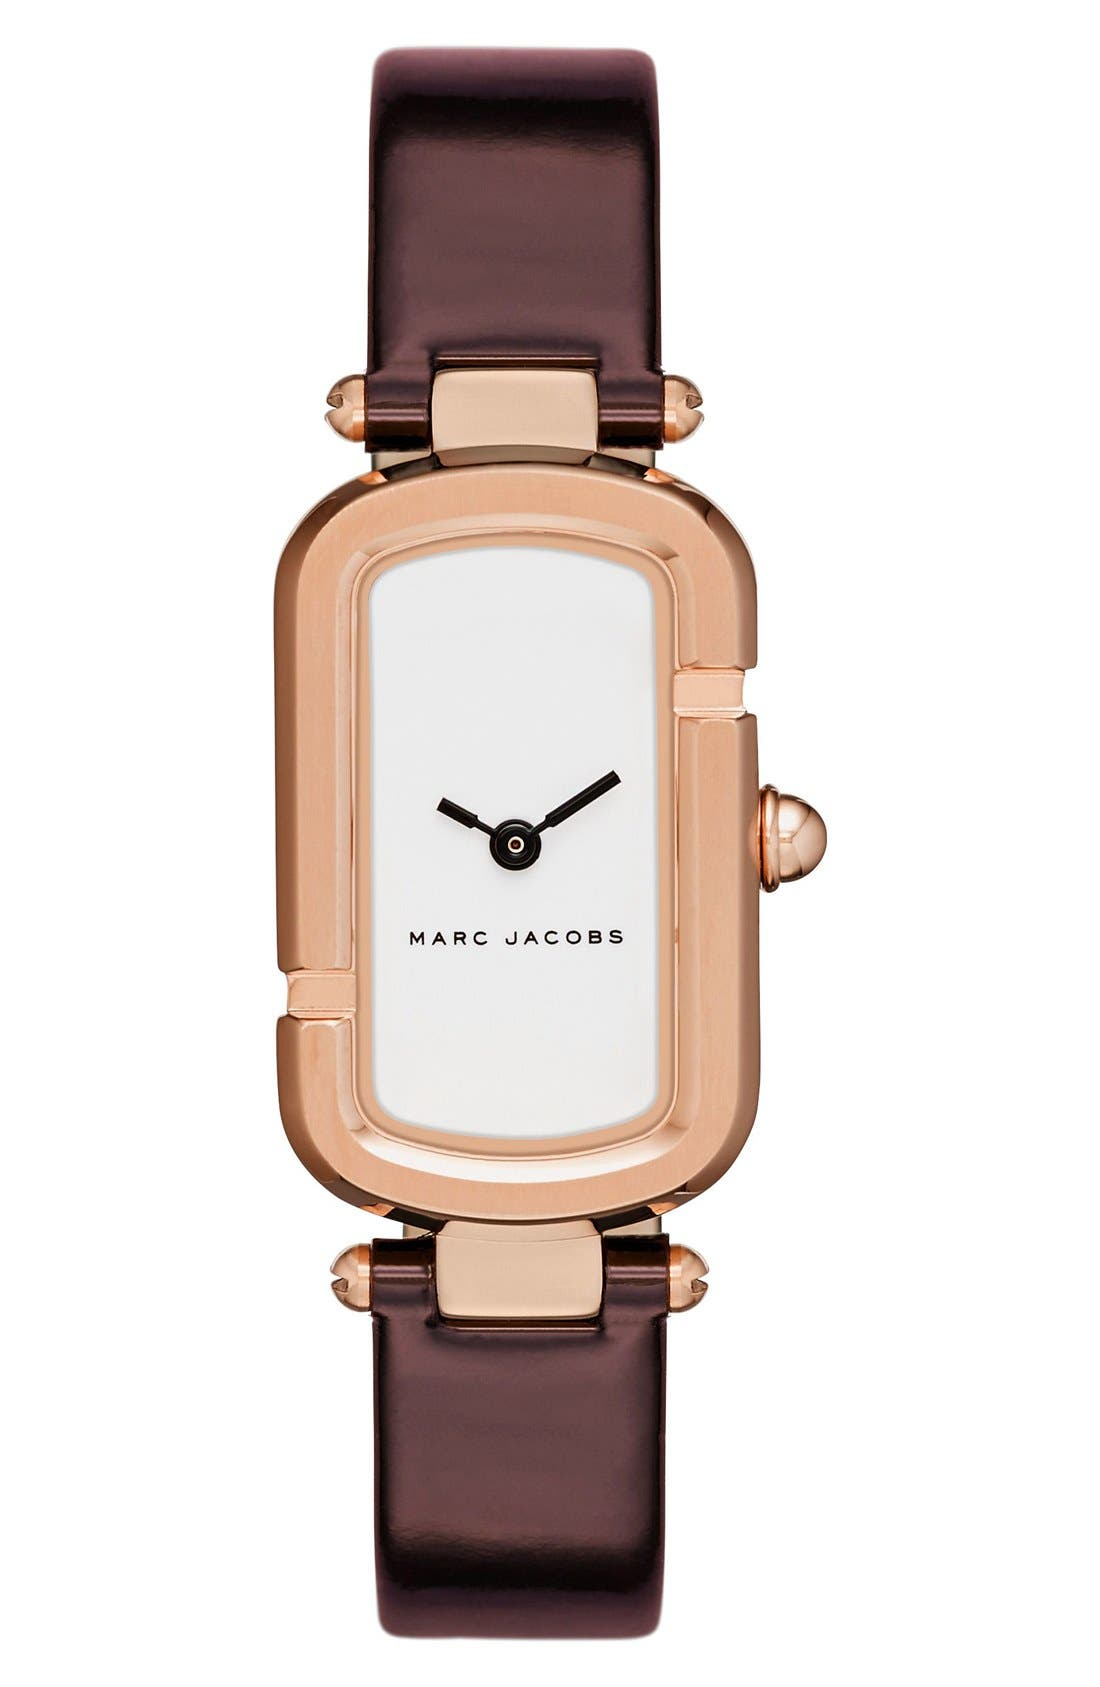 Main Image - MARC JACOBS 'The Jacobs' Leather Strap Watch, 30mm